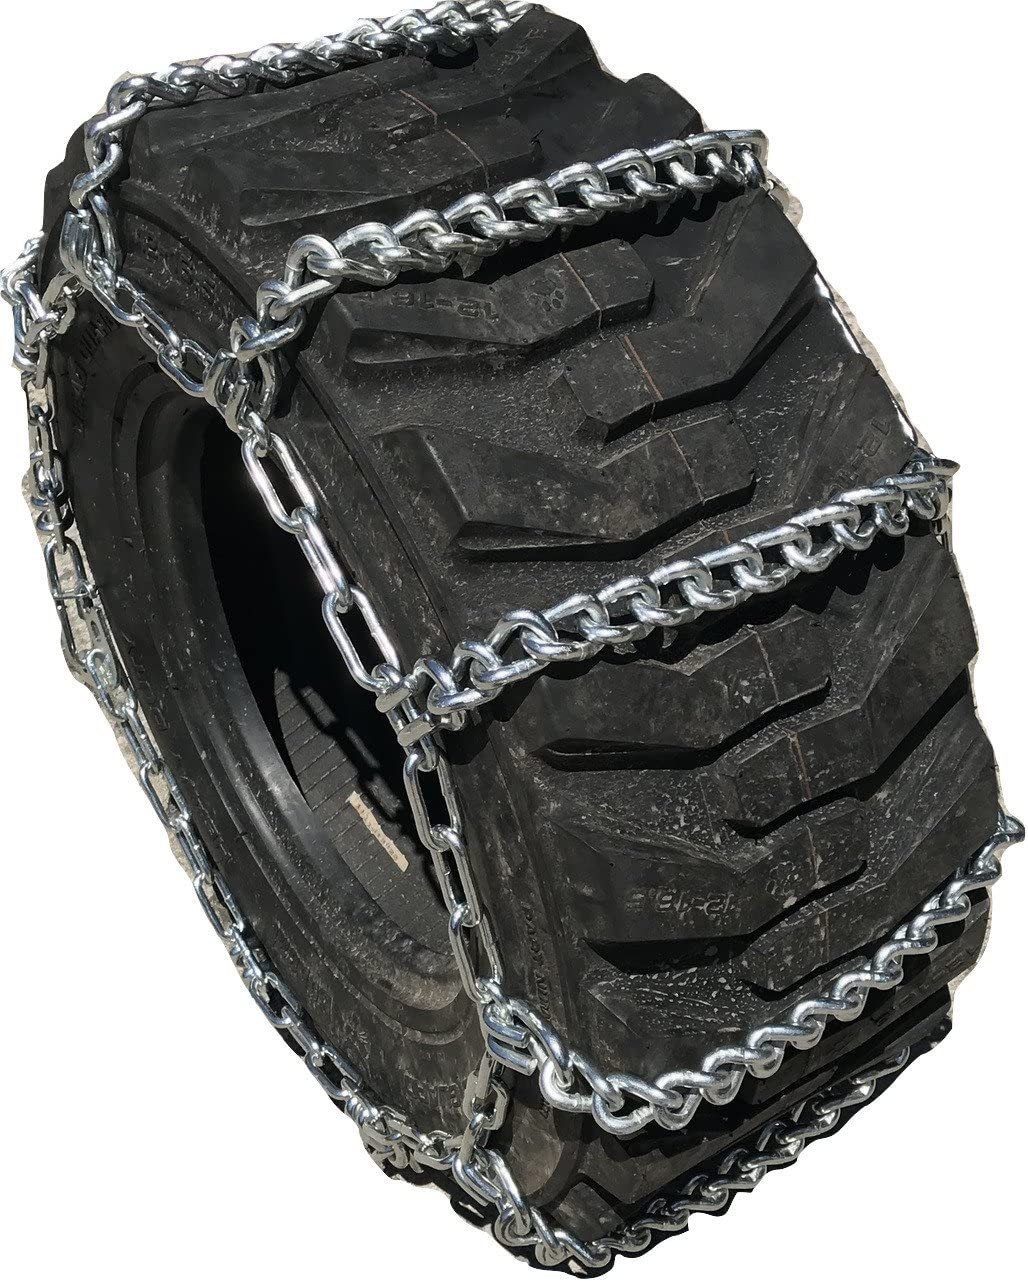 TireChain.com 12 16.5 12-16.5 Ladder Tractor Tire Chains Set of 2, 822